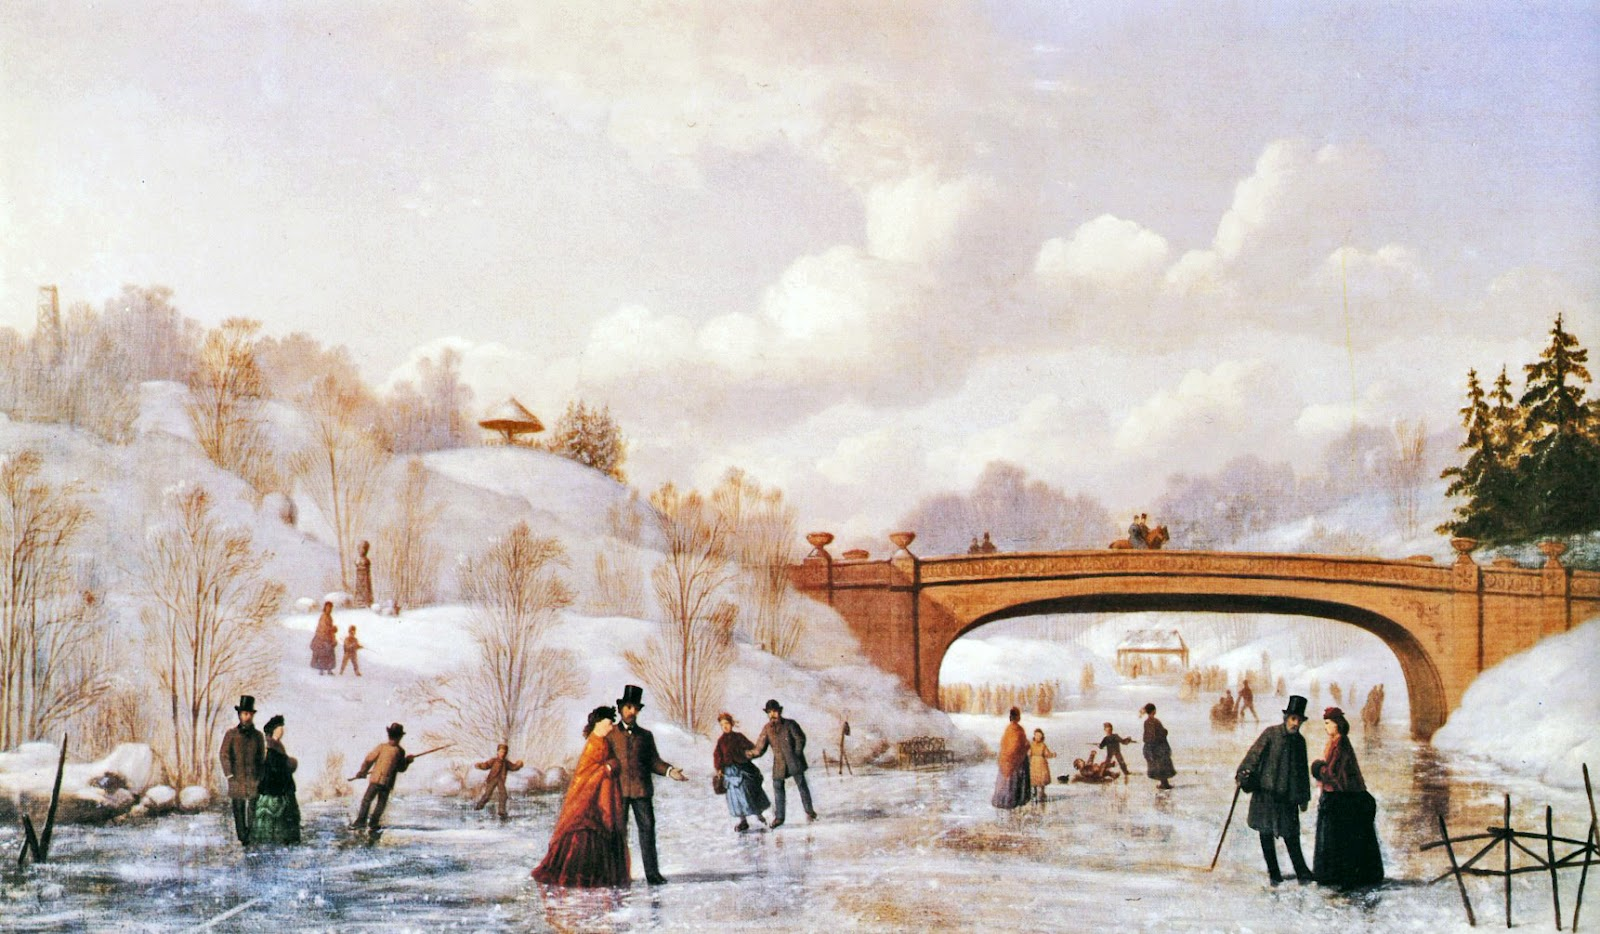 19th century American Paintings: Paintings of Winter Central Park Winter Painting